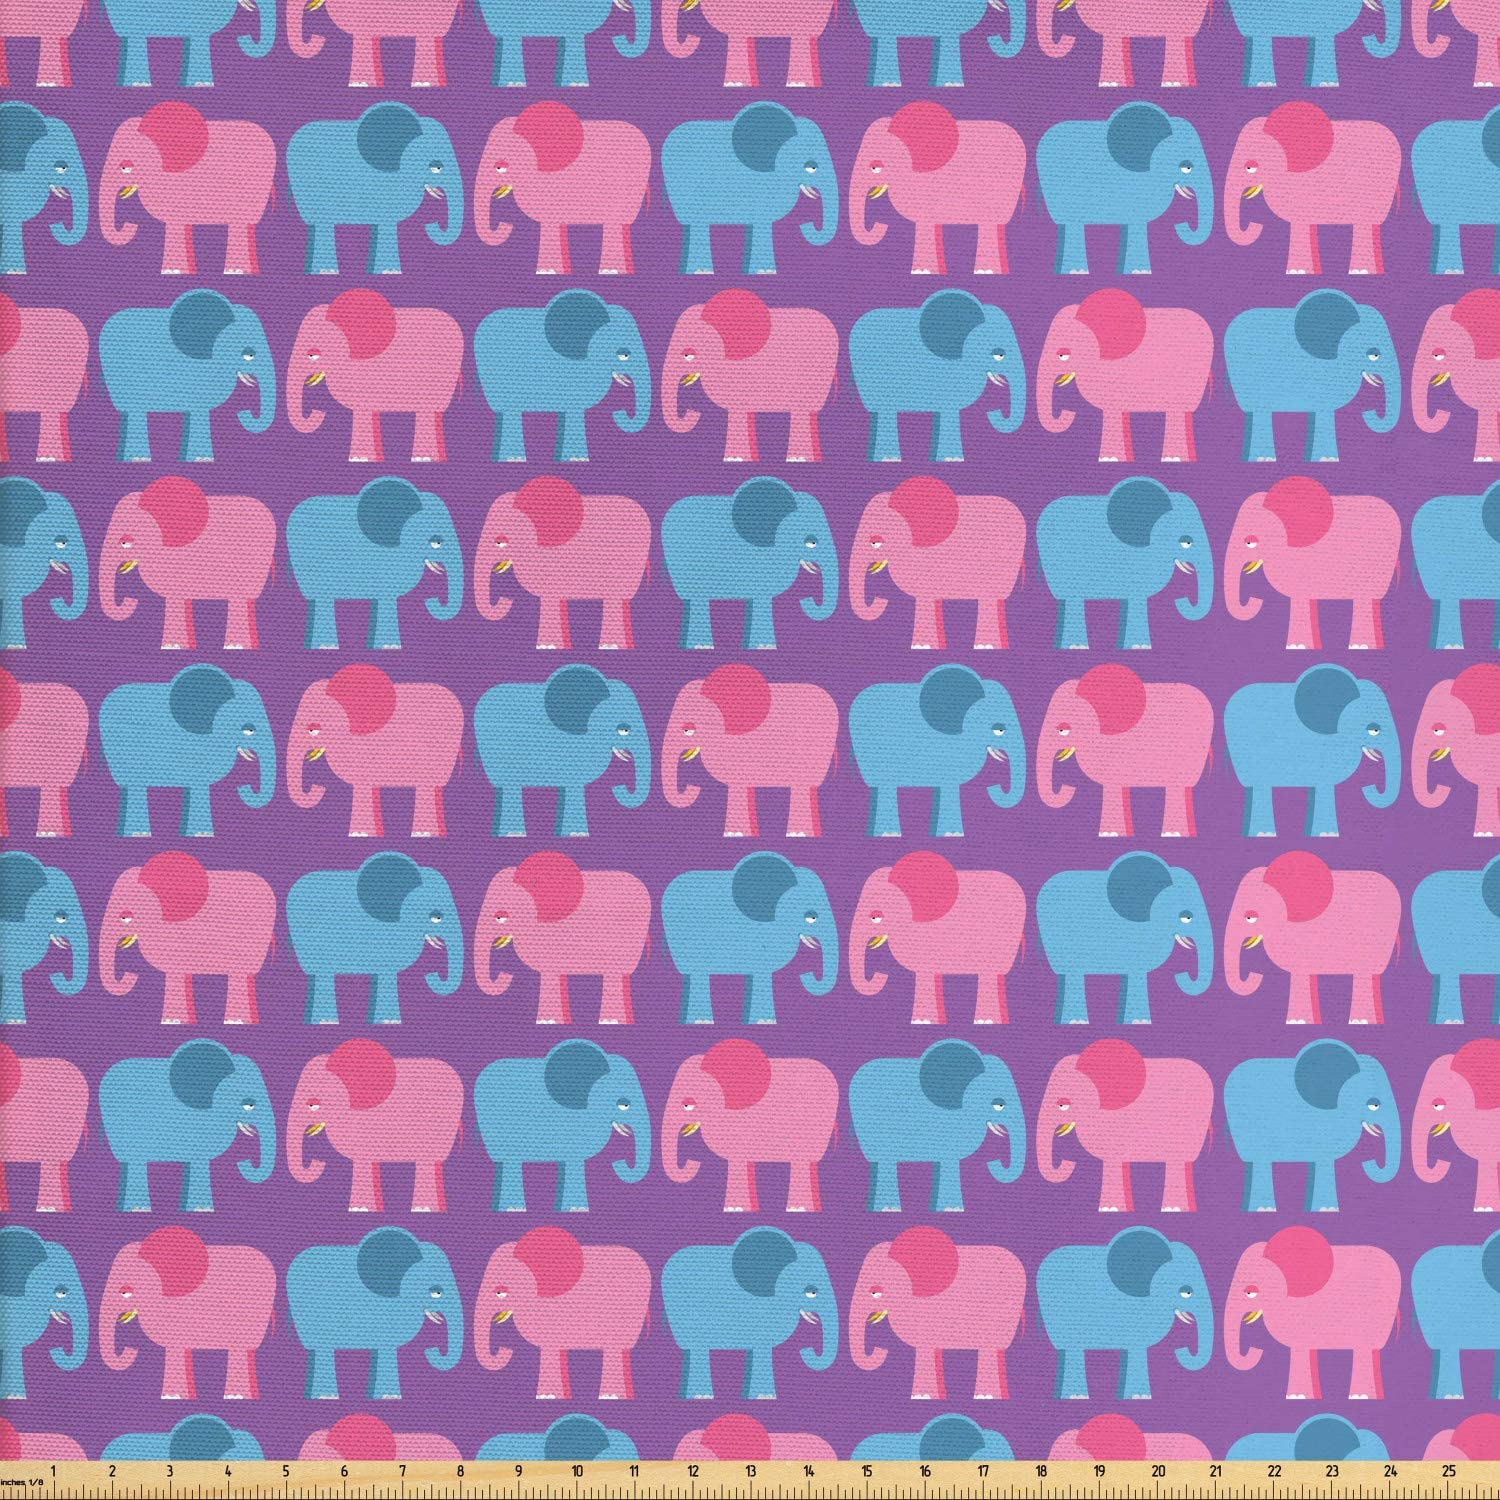 Ambesonne Nursery Elephant Fabric by The Yard, Pattern of and Big Wild Animals of The Jungle, Decorative Fabric for Upholstery and Home Accents, 1 Yard, Violet Sky Blue